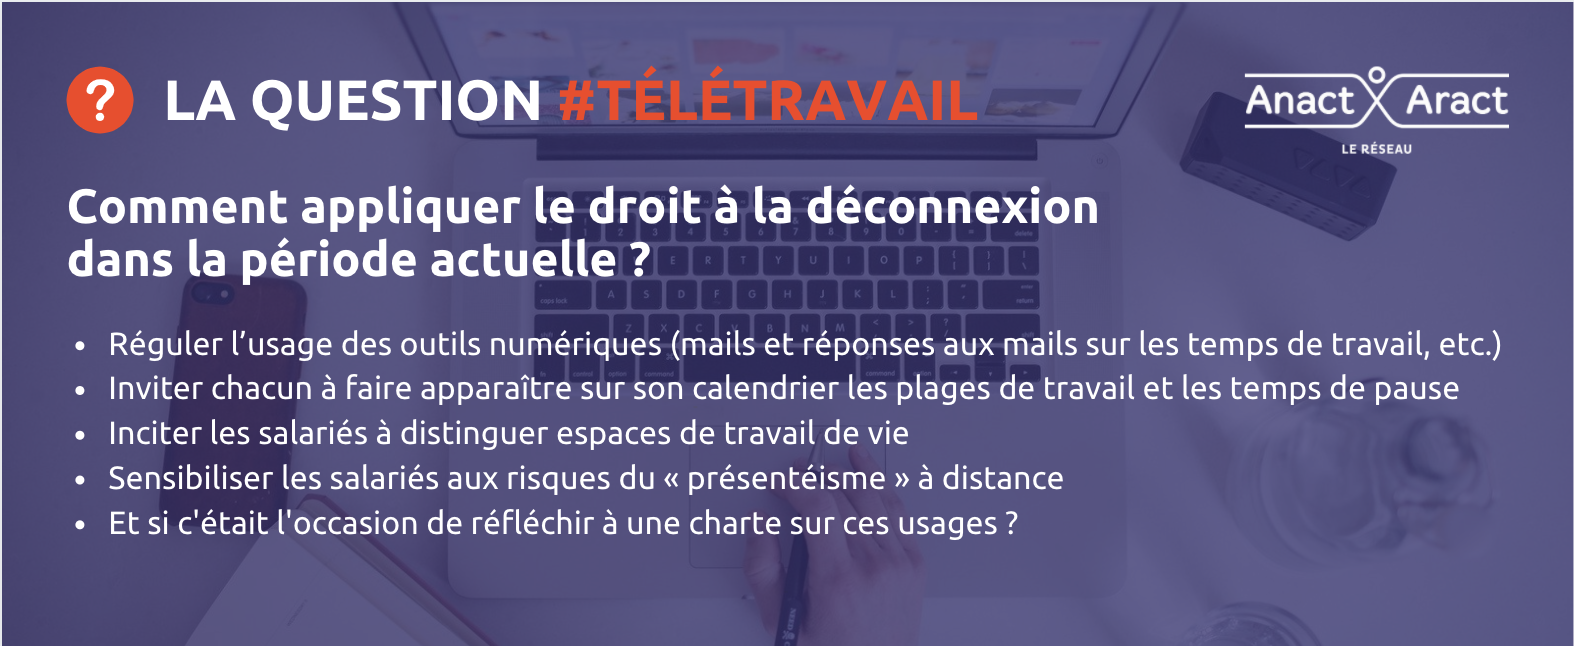 question teletravail 4